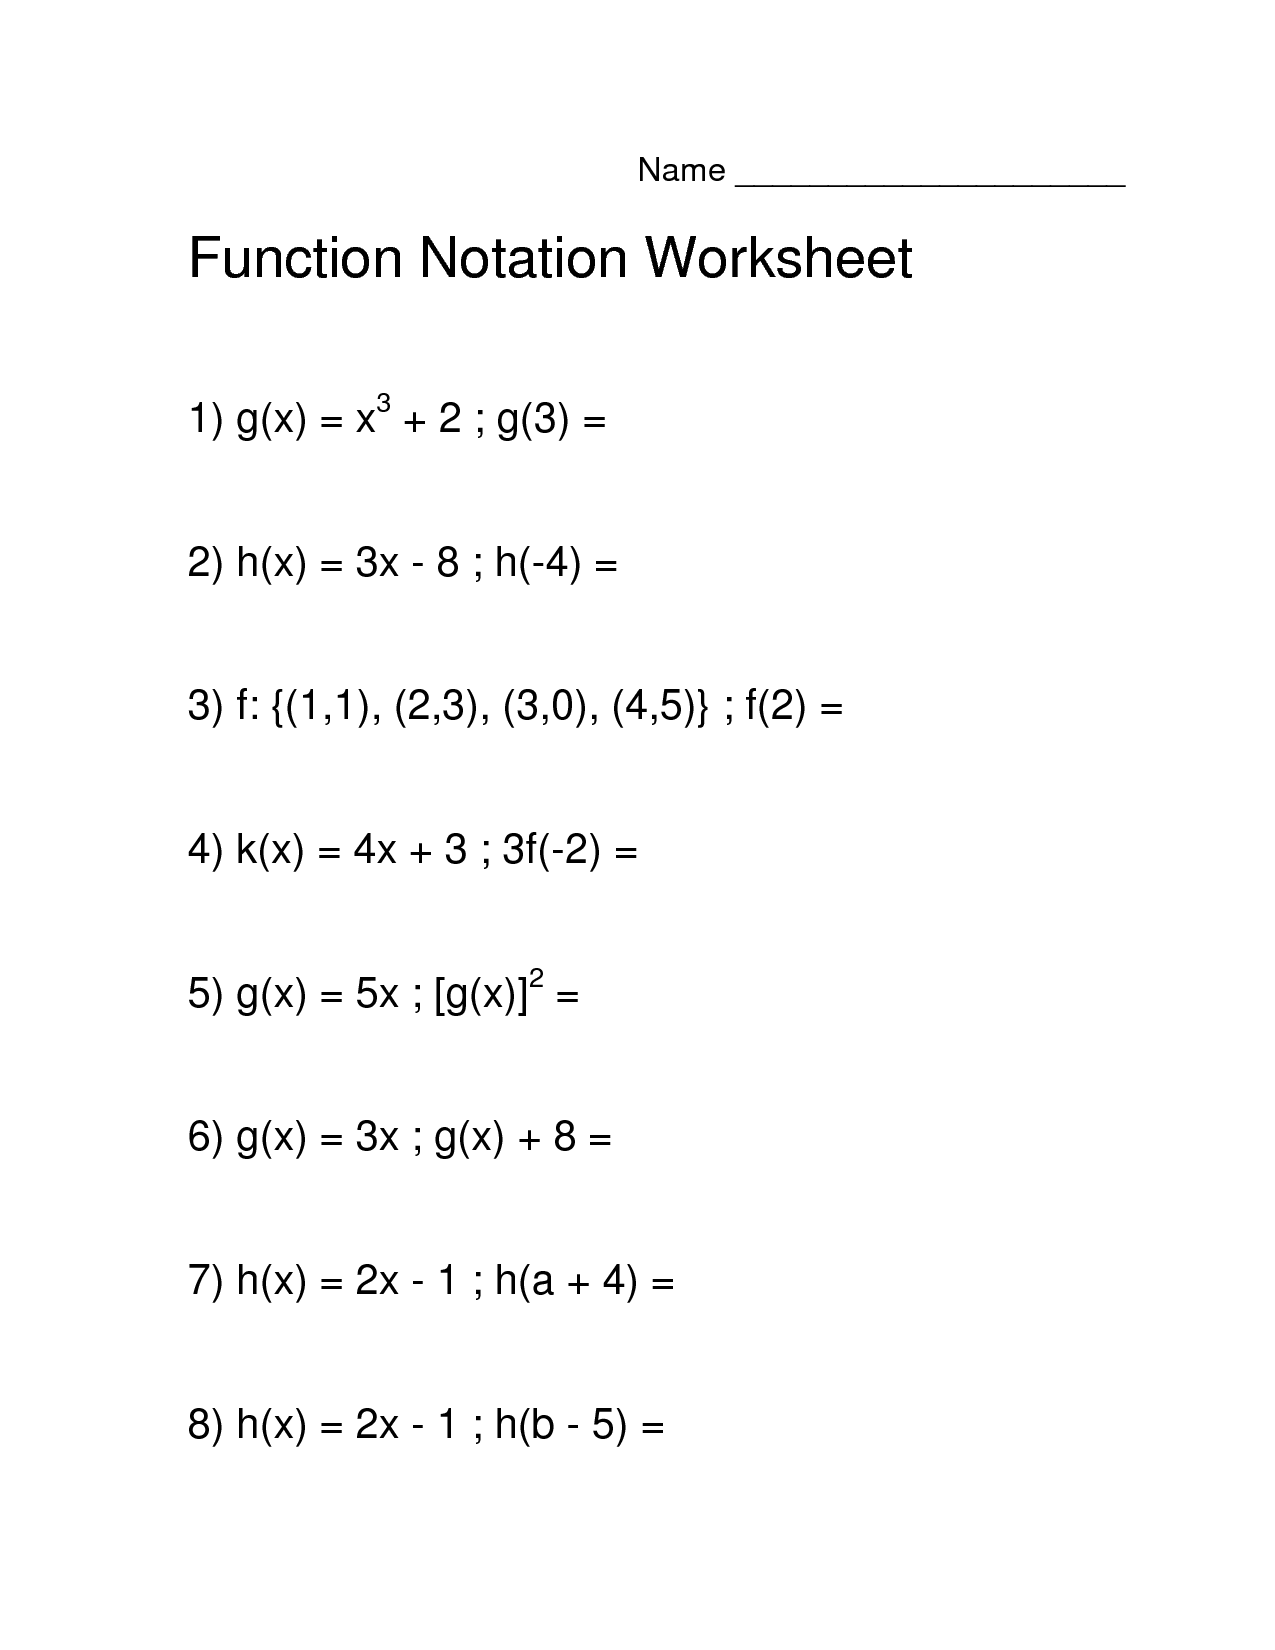 29 Algebra 1 Function Notation Worksheet